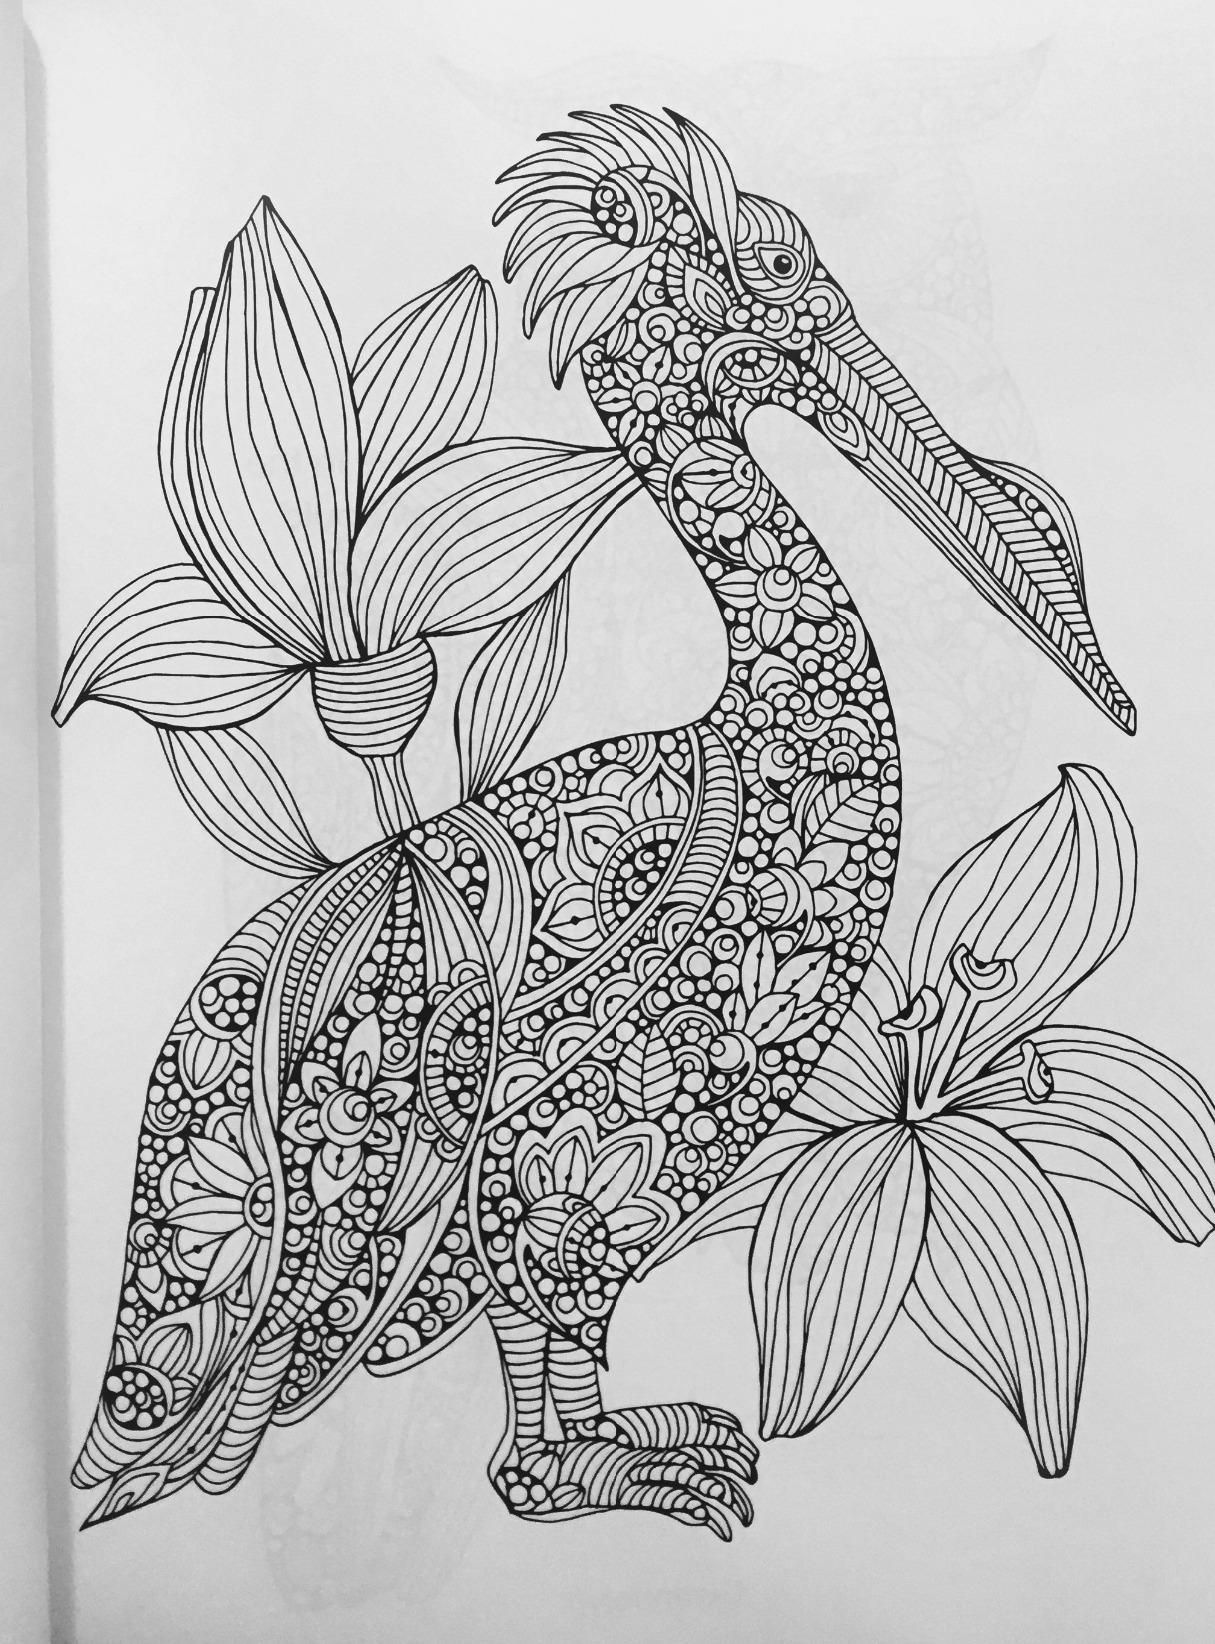 creative colouring pages 26936 beste afbeeldingen over adult coloring books op colouring creative pages